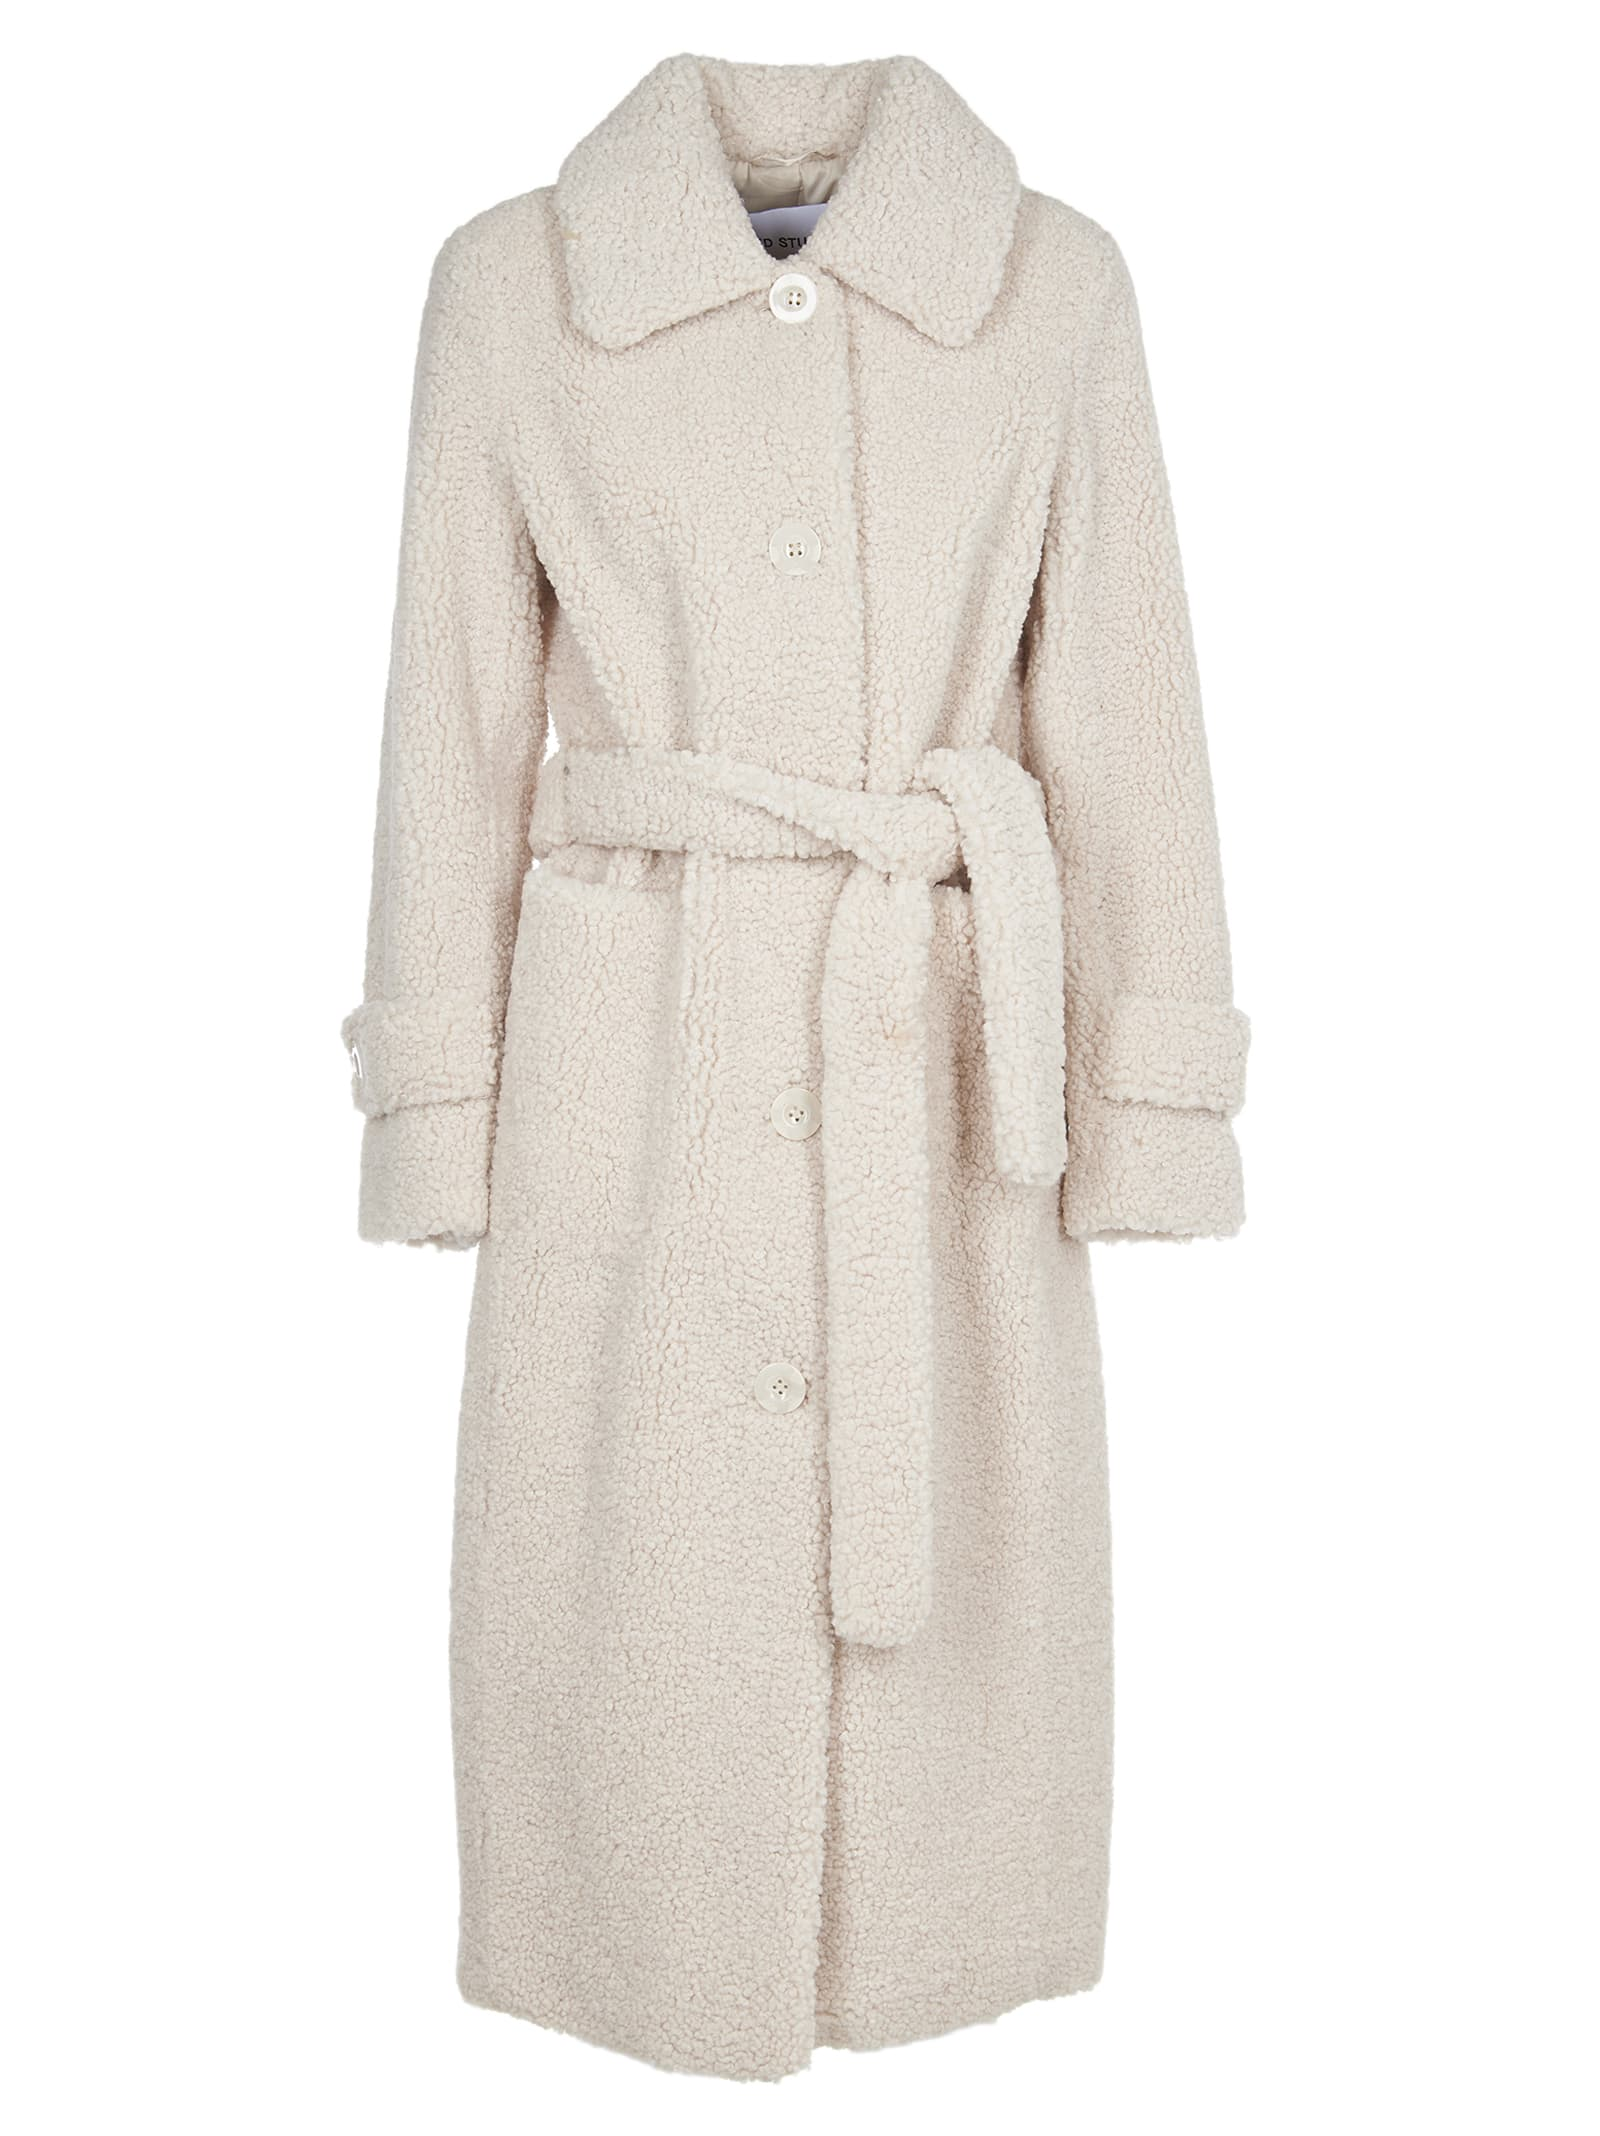 STAND STUDIO Lottie White Faux Fur Coat